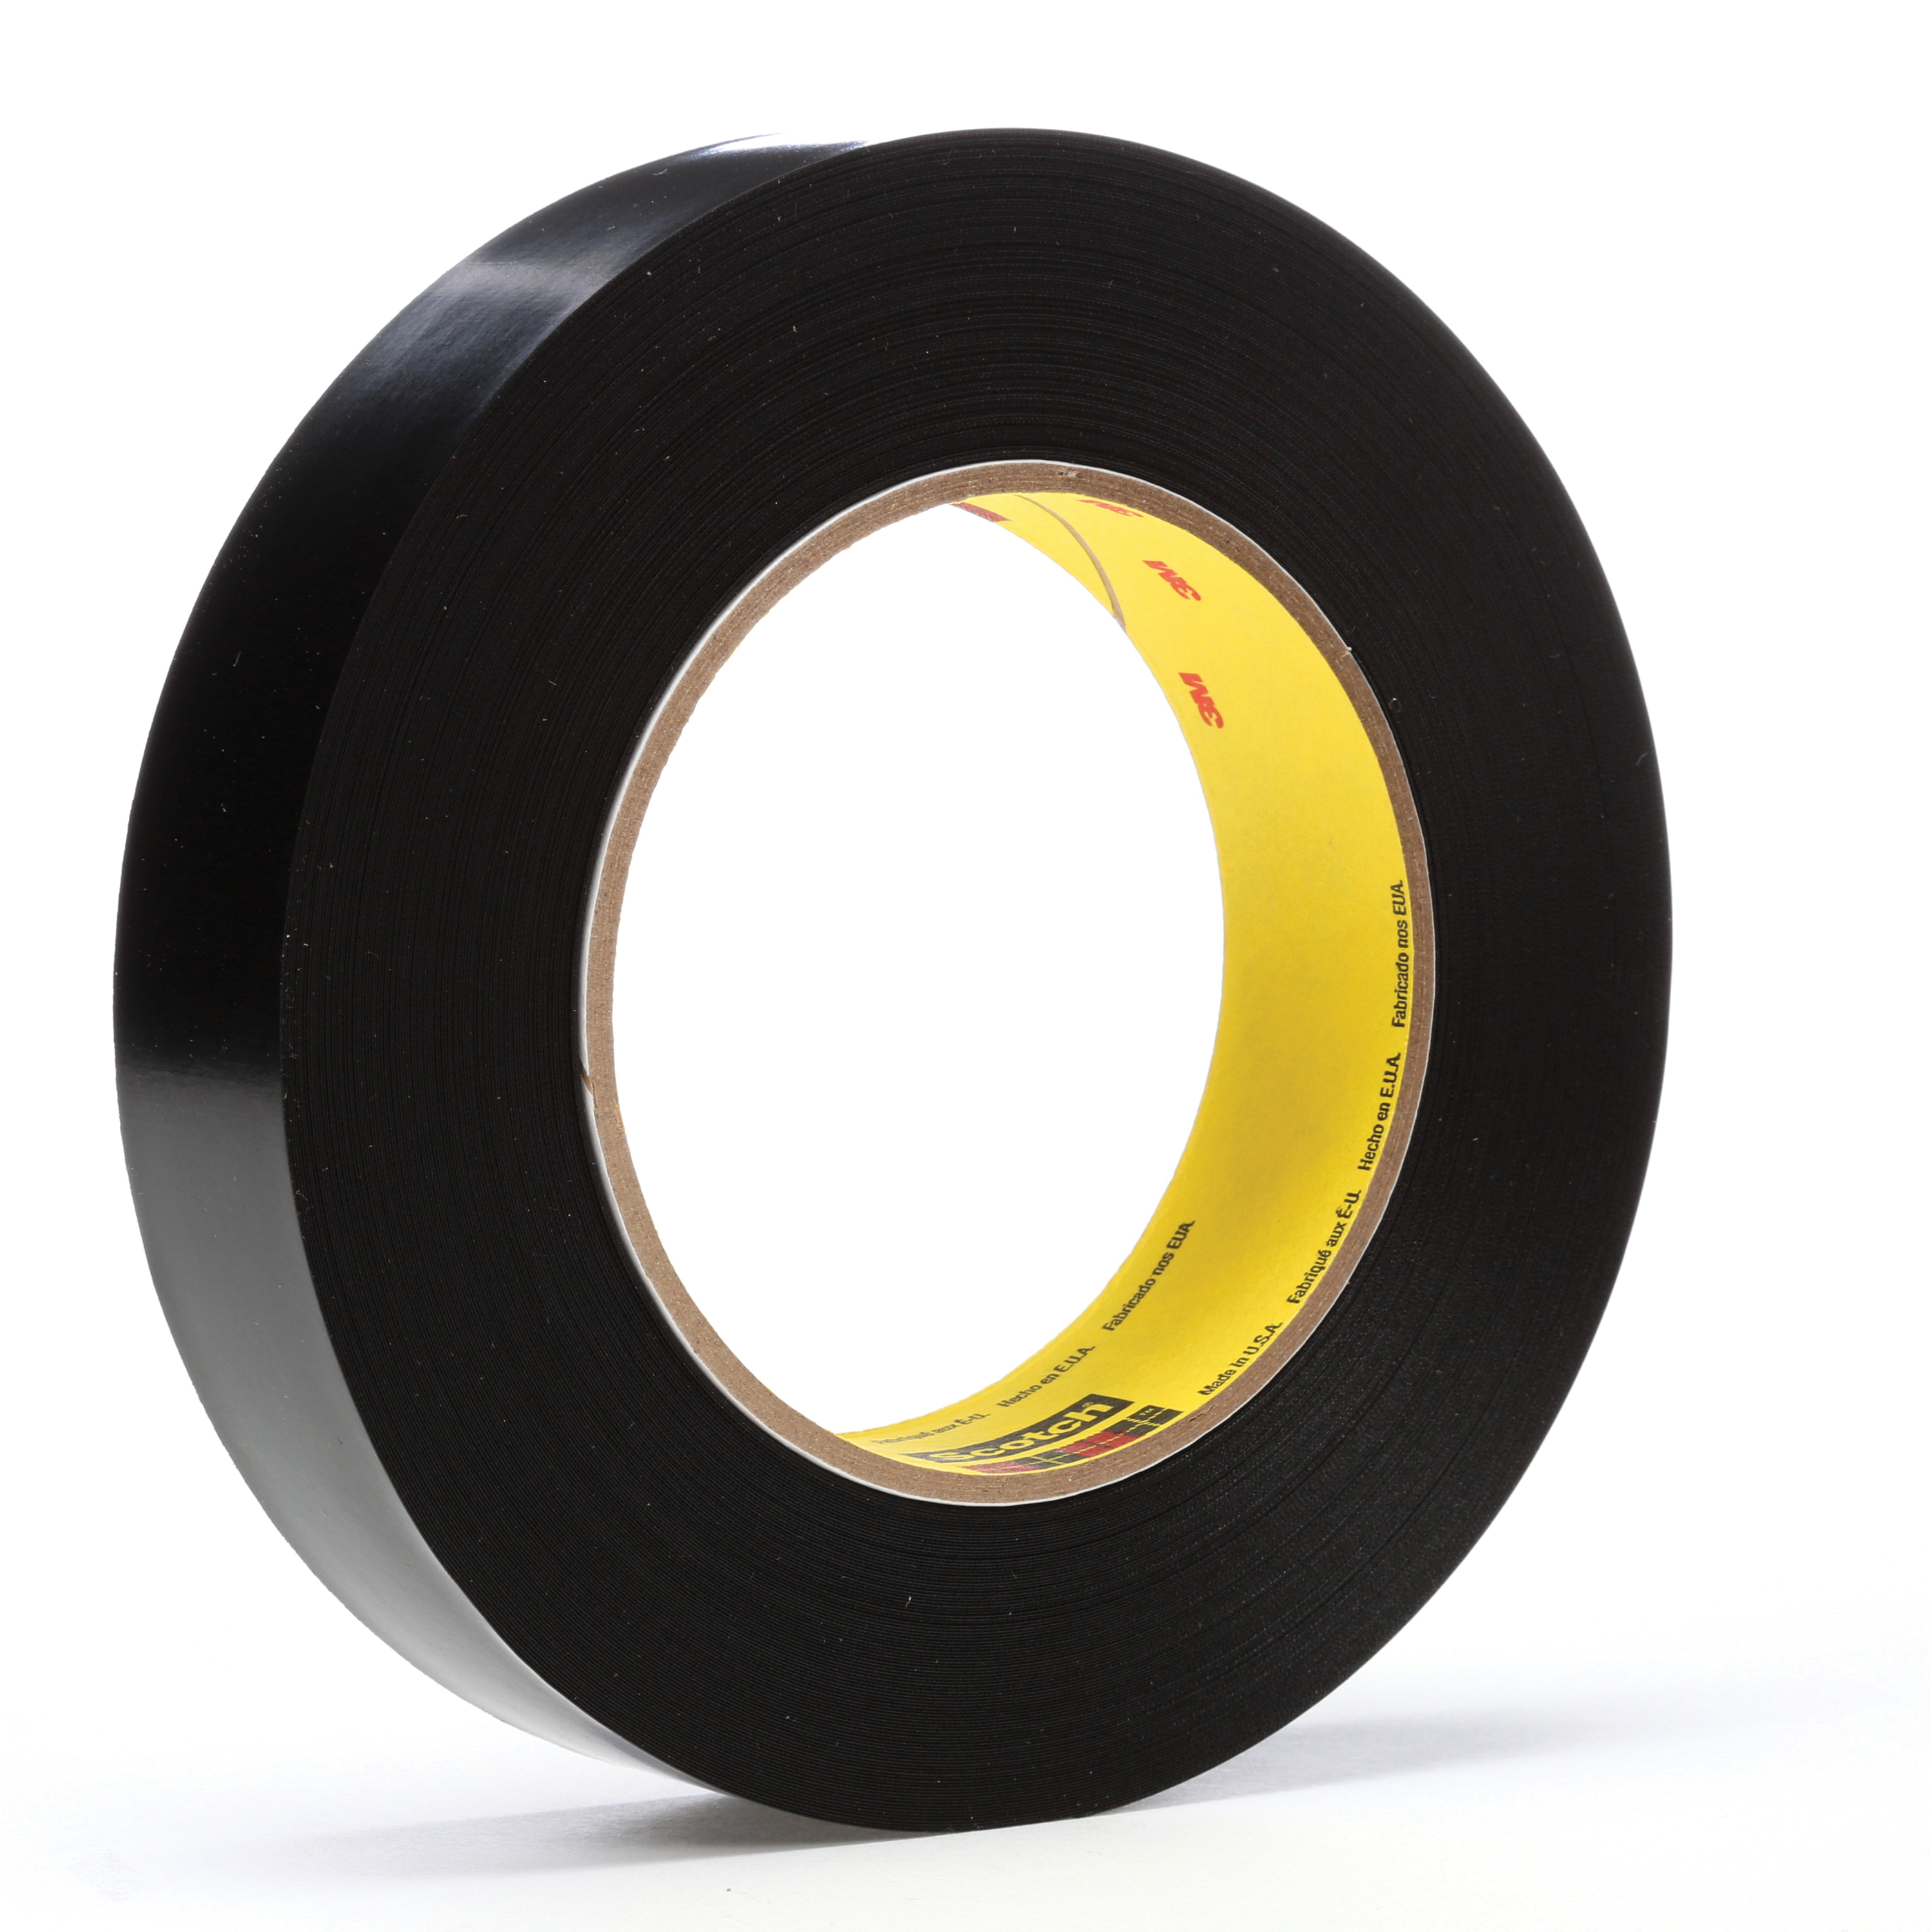 3M™ 021200-03151 Heavy Duty Vinyl Tape, 36 yd L x 1 in W, 10.4 mil THK, Rubber Adhesive, Vinyl Backing, Black